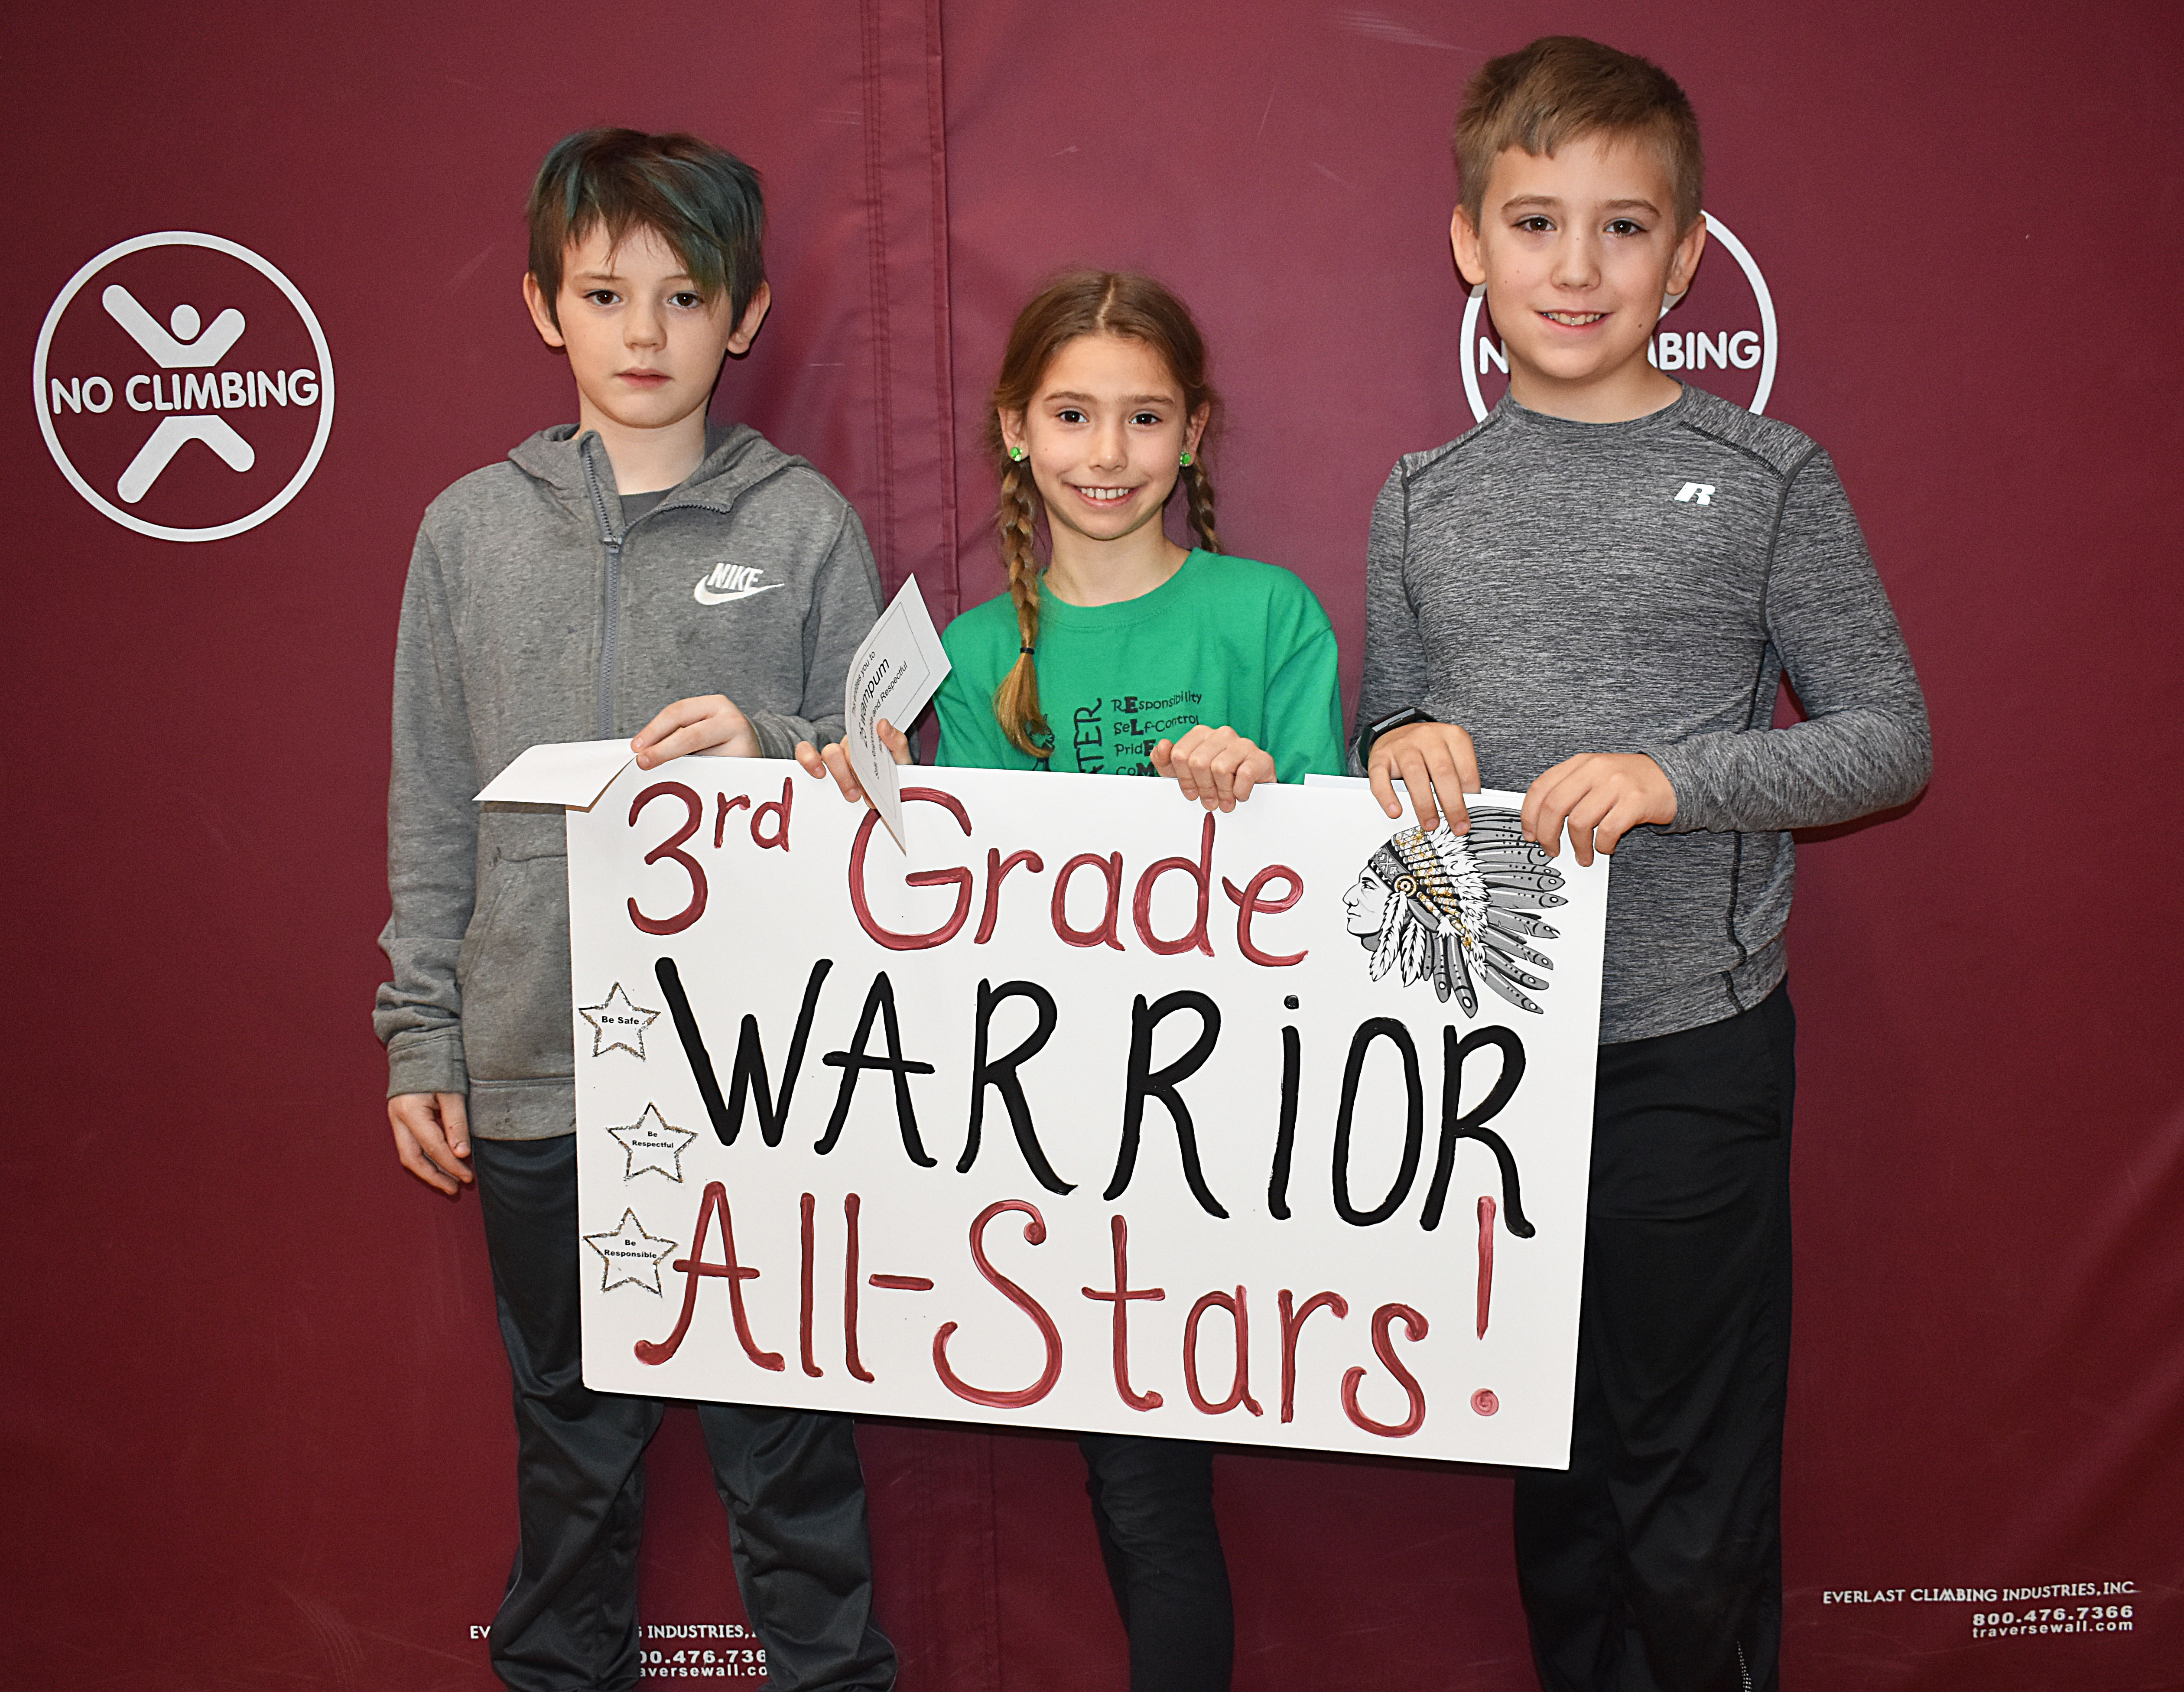 Three third graders gathered together with the third grade sign